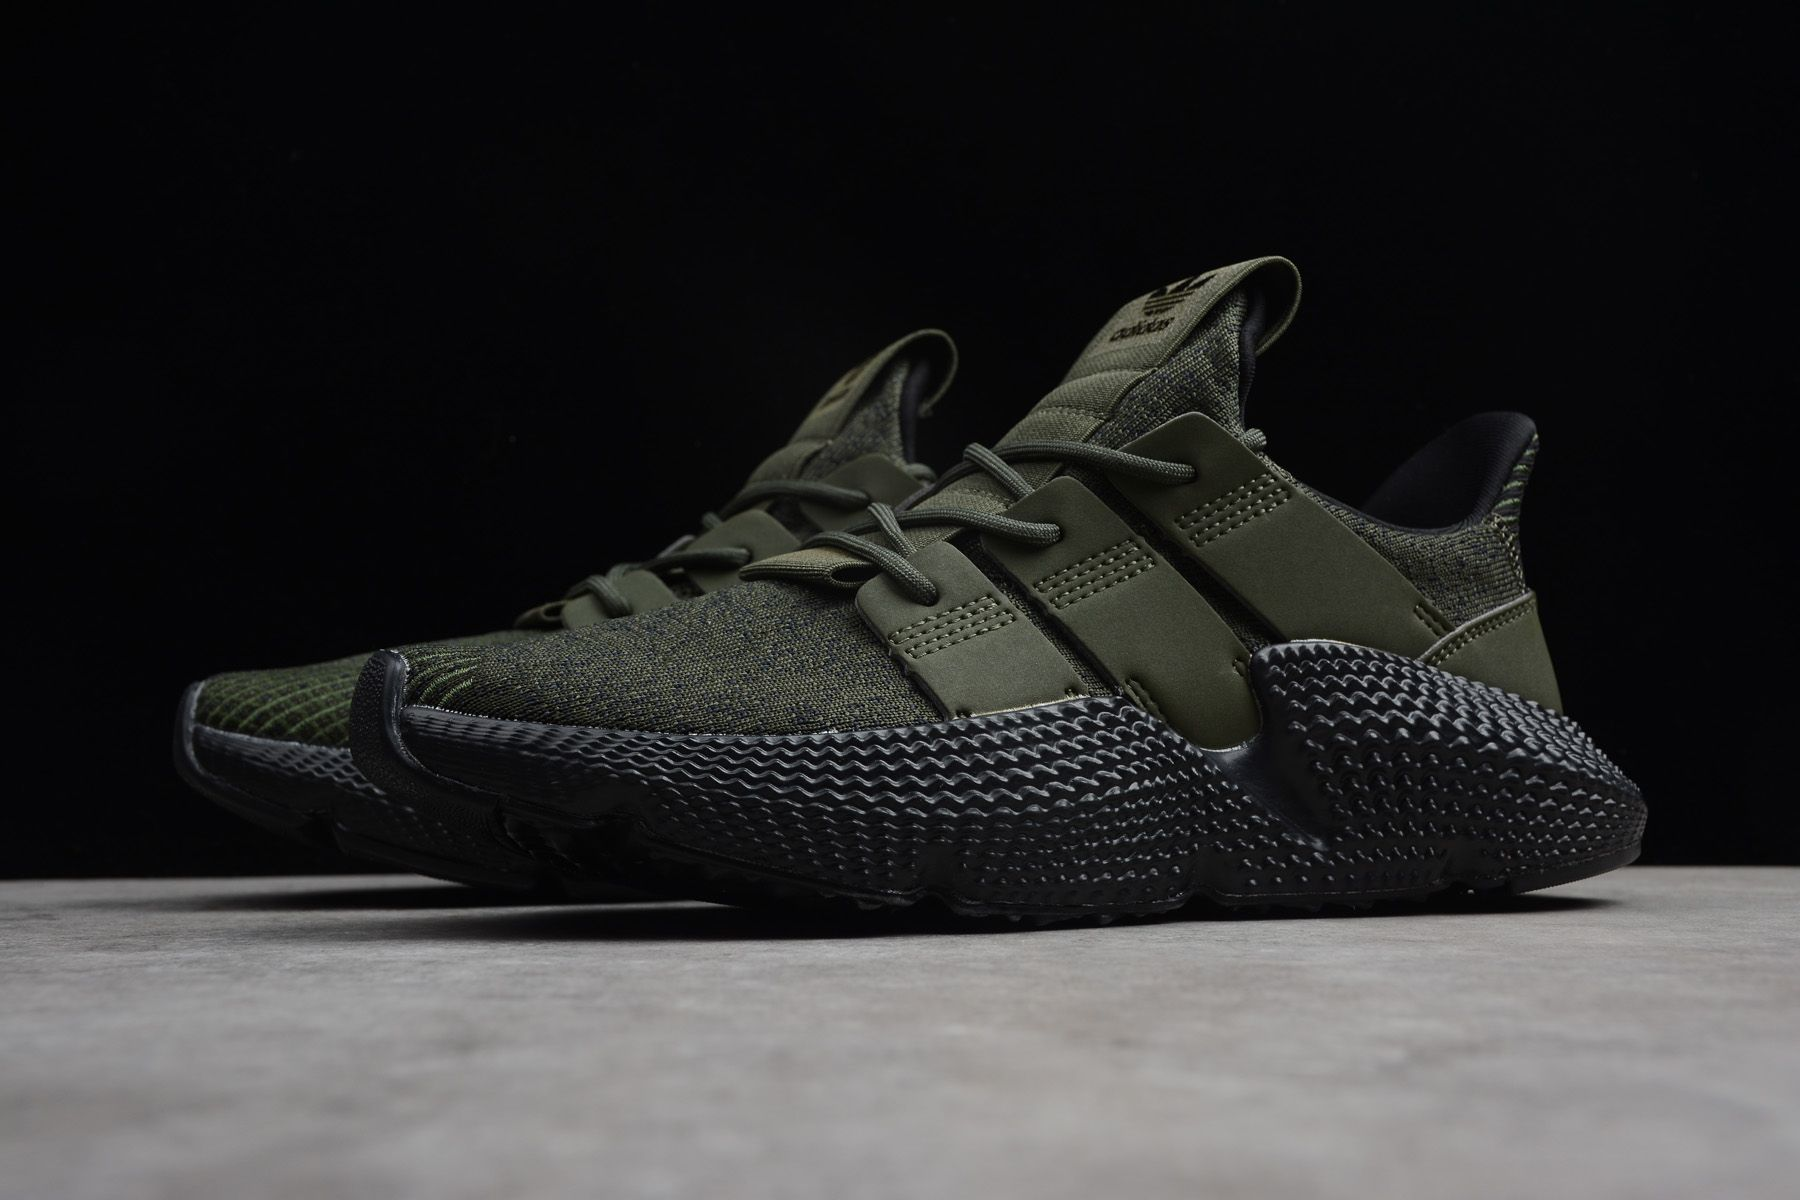 new style 970a2 57c37 Men s adidas Prophere Black Olive BD7589   NMD 2019